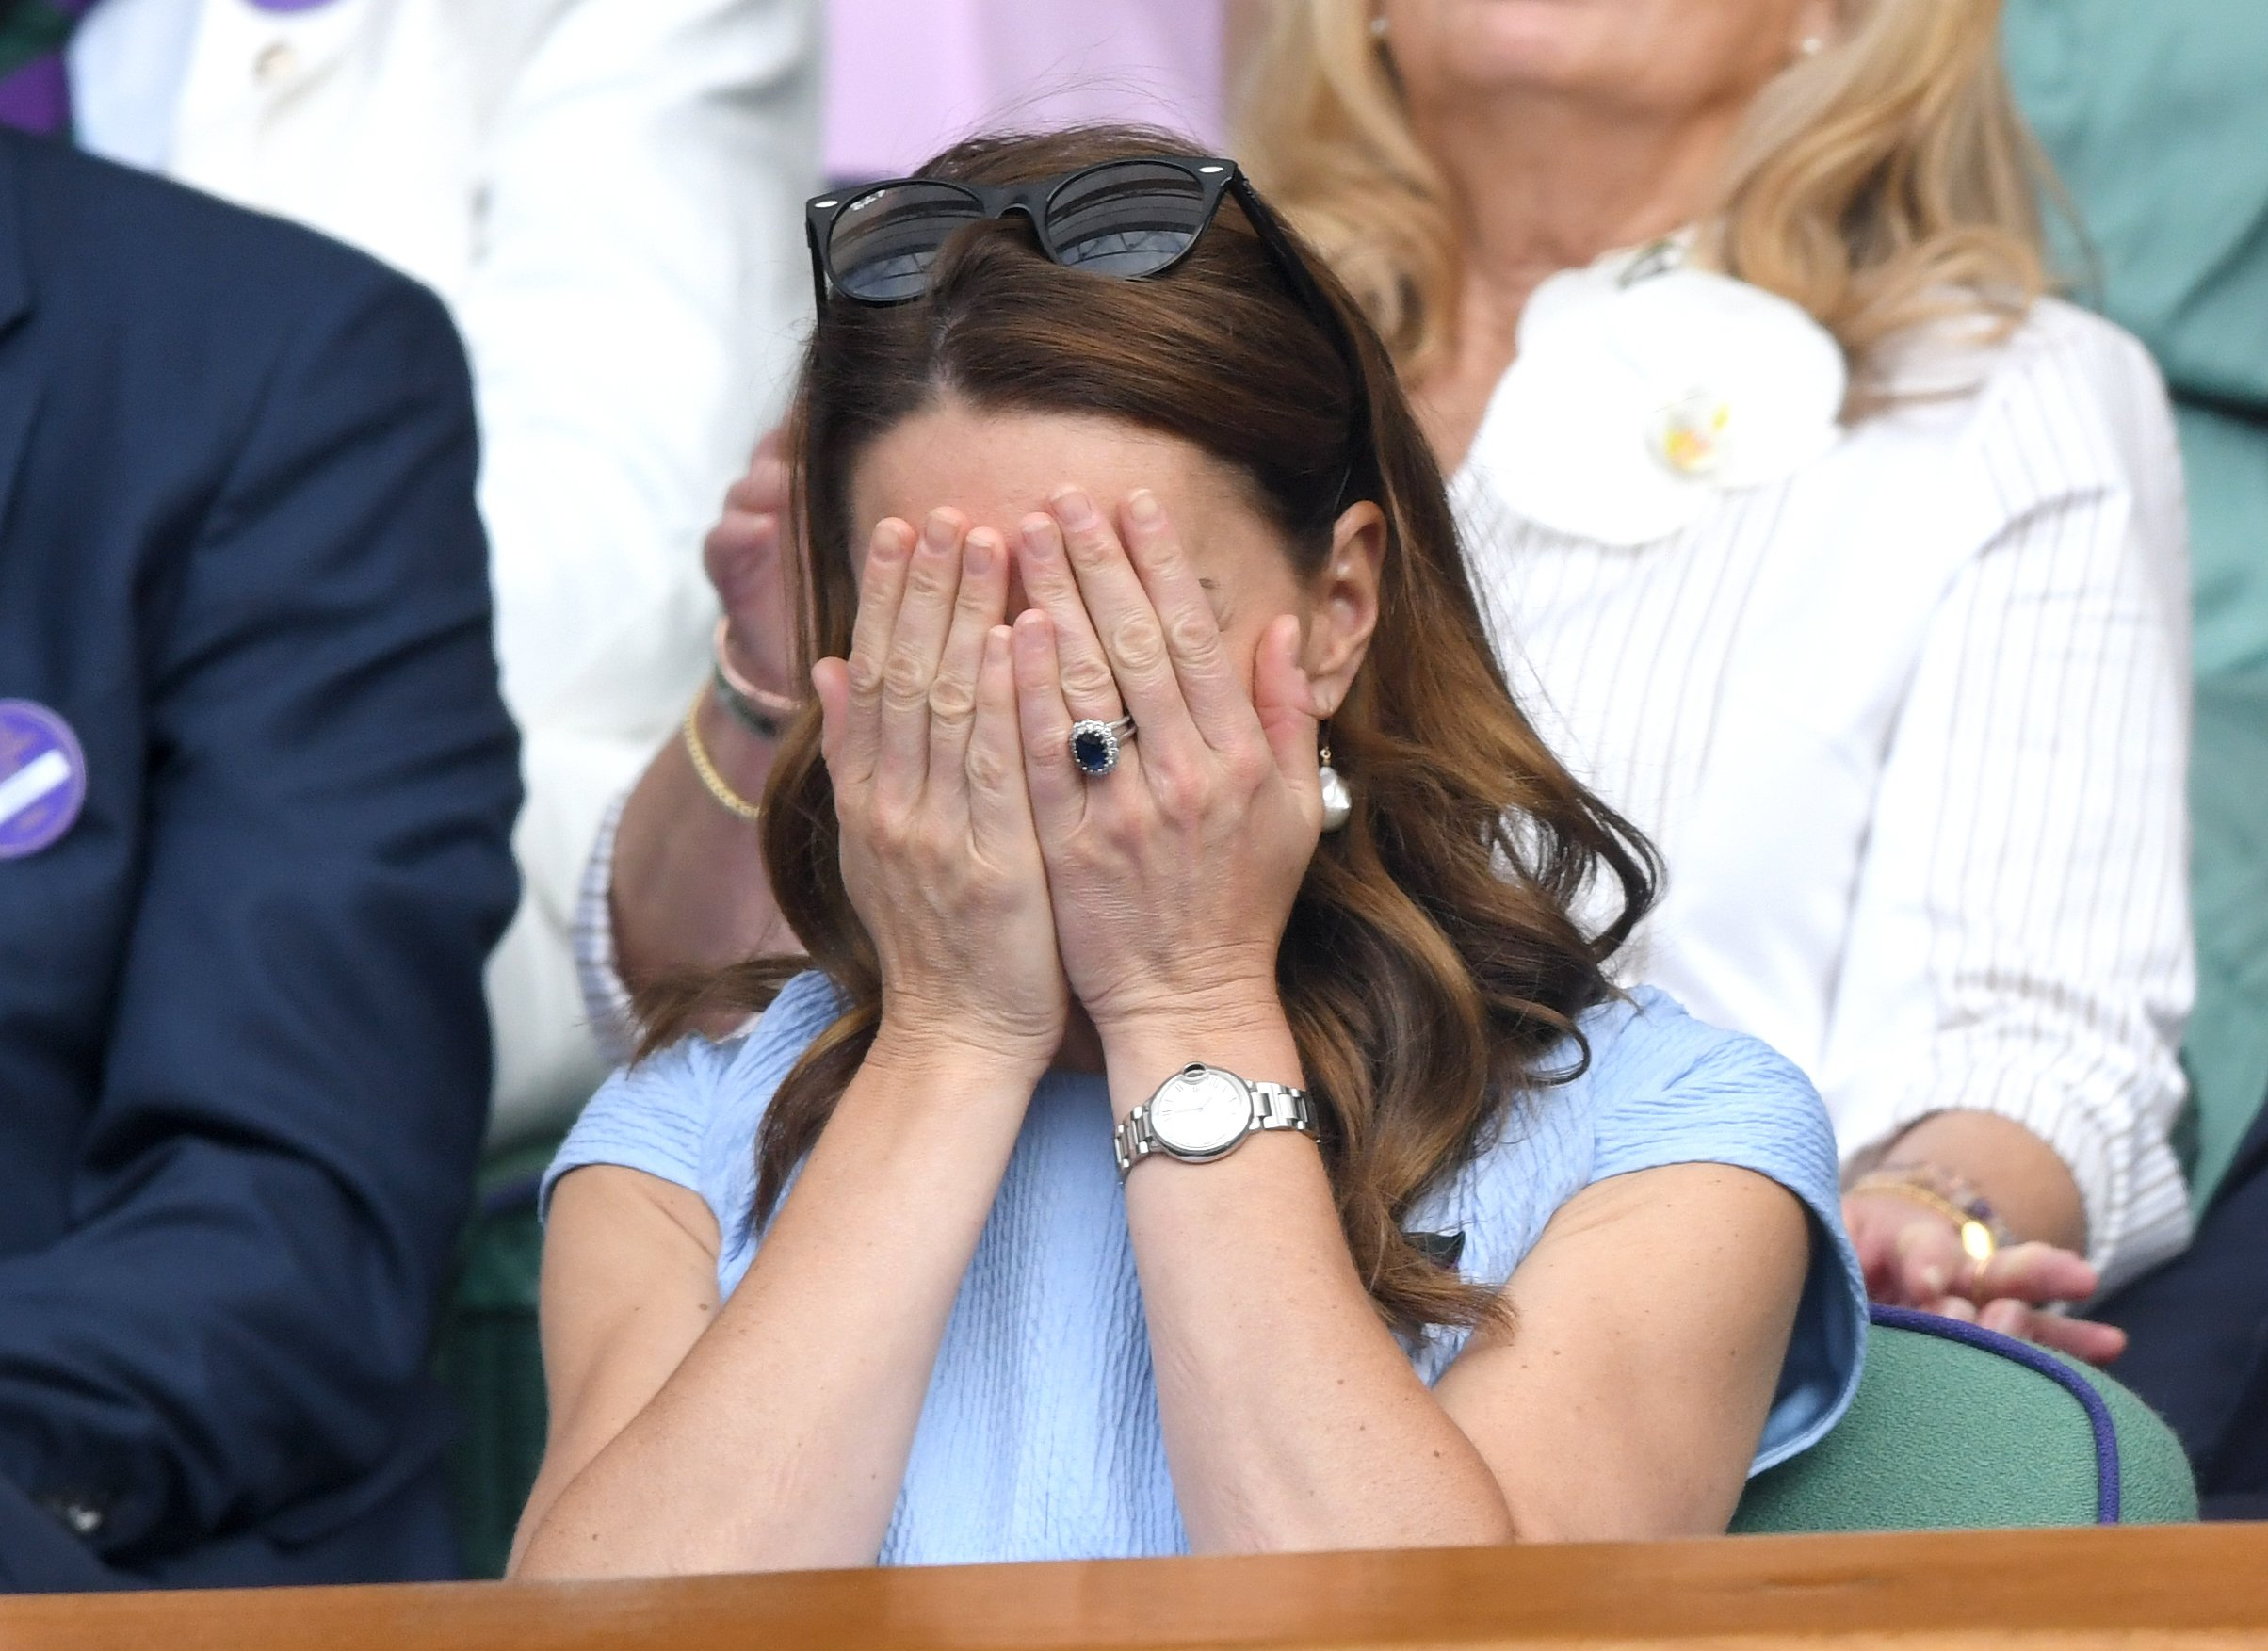 Duchess Kate reacting to the Men's Finals match at Wimbledon on July 14, 2019 | Photo: Getty Images